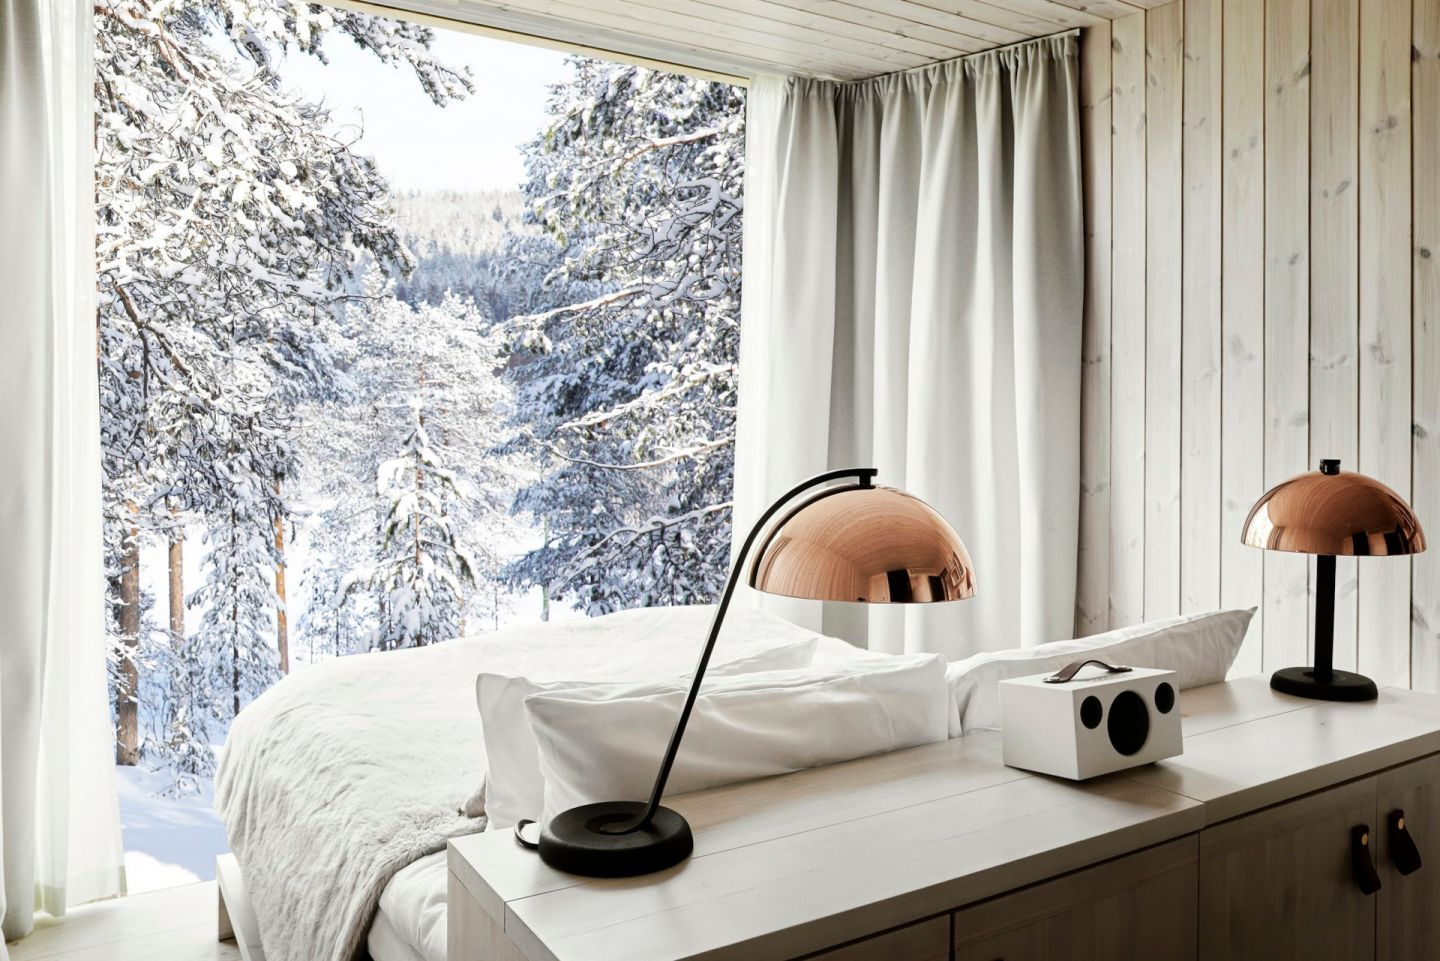 A winter view from the Arctic TreeHouse Hotel, a special winter accommodation in Finnish Lapland